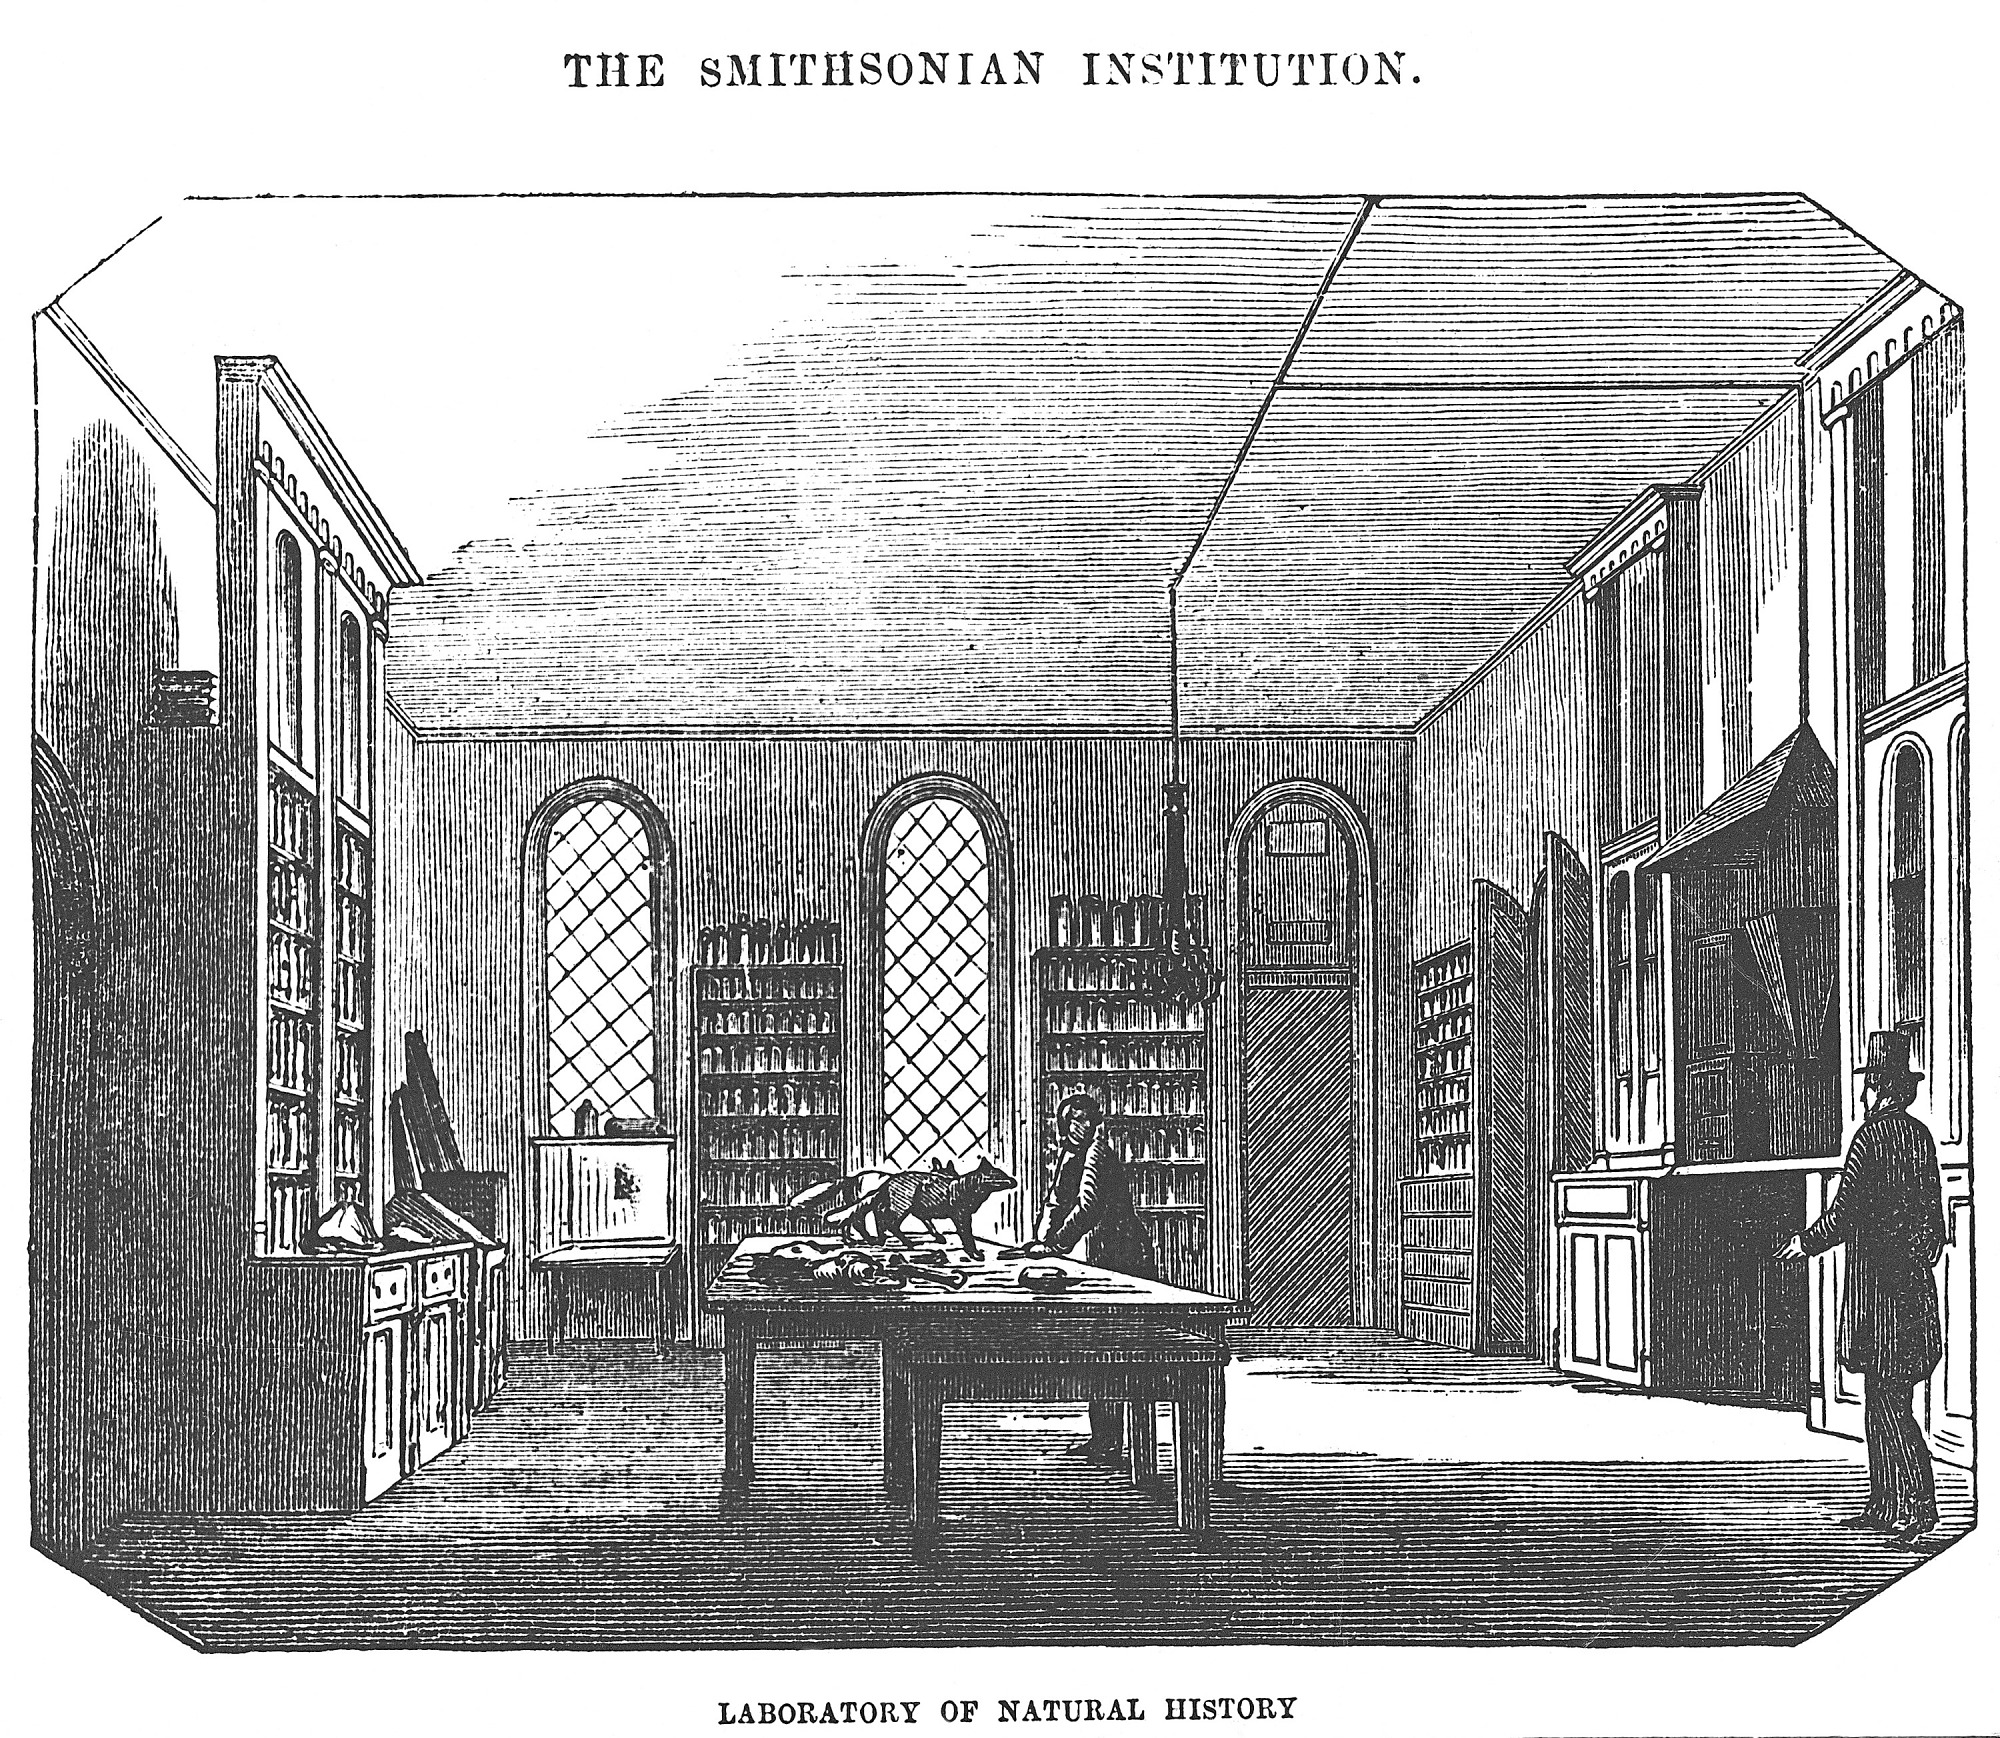 Engraving of the Laboratory of Natural History in the Smithsonian Institution Building, 1857. Smithsonian Institution Archives, negative number 2005-10437.